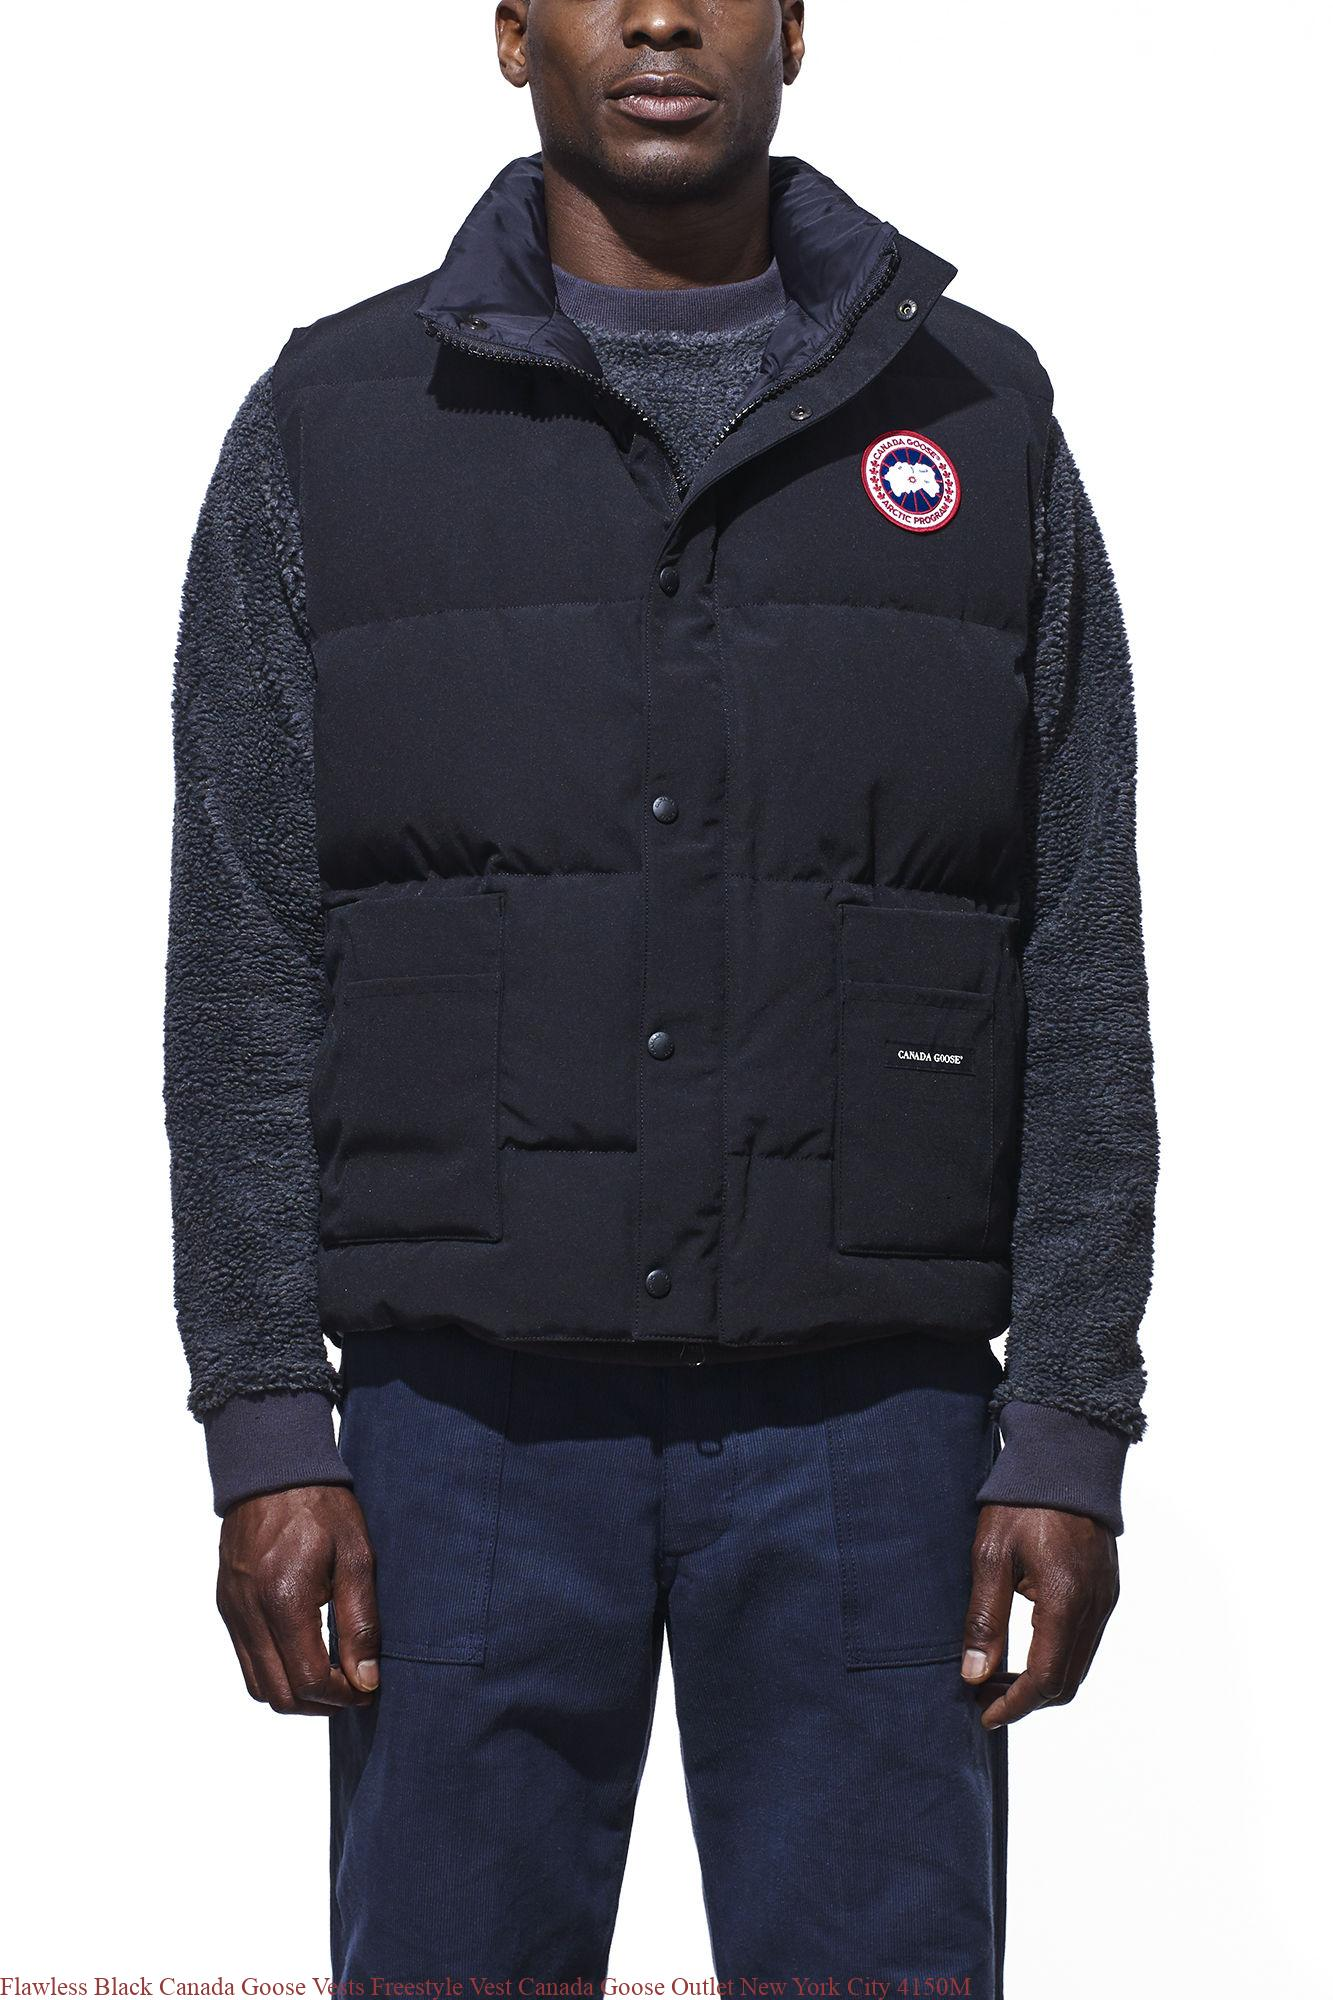 Flawless Black Canada Goose Vests Freestyle Vest Canada Goose Outlet New  York City 4150M – Cheap Canada Goose Outlet Jackets & Parkas Sale | Up to  70% Off